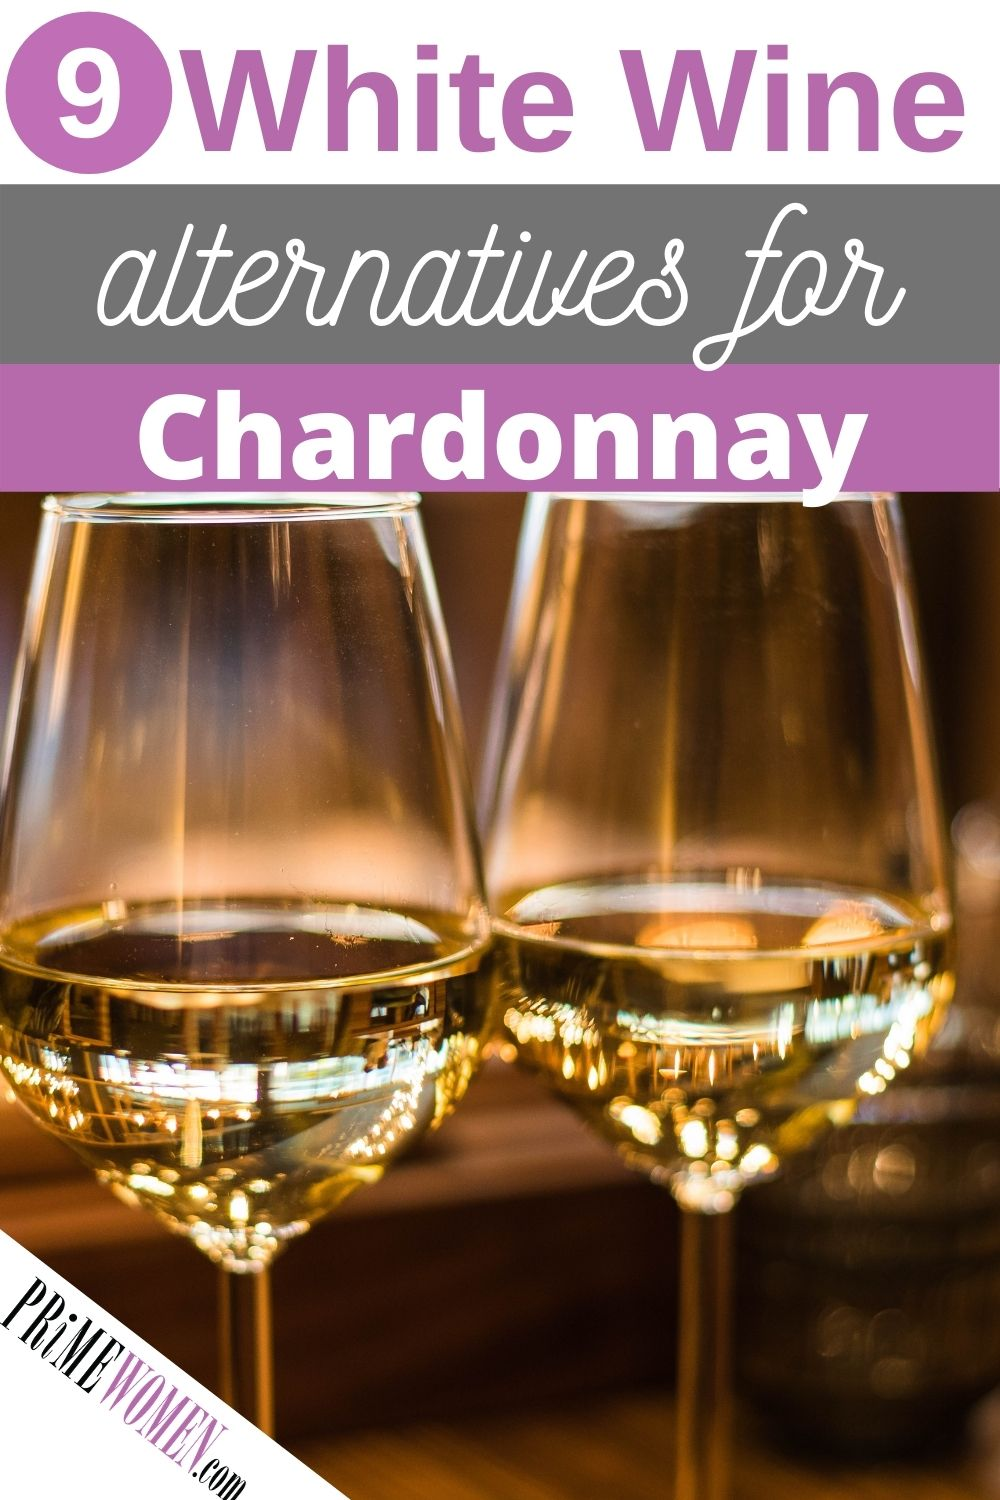 9 White Wine Alternatives for Chardonnay